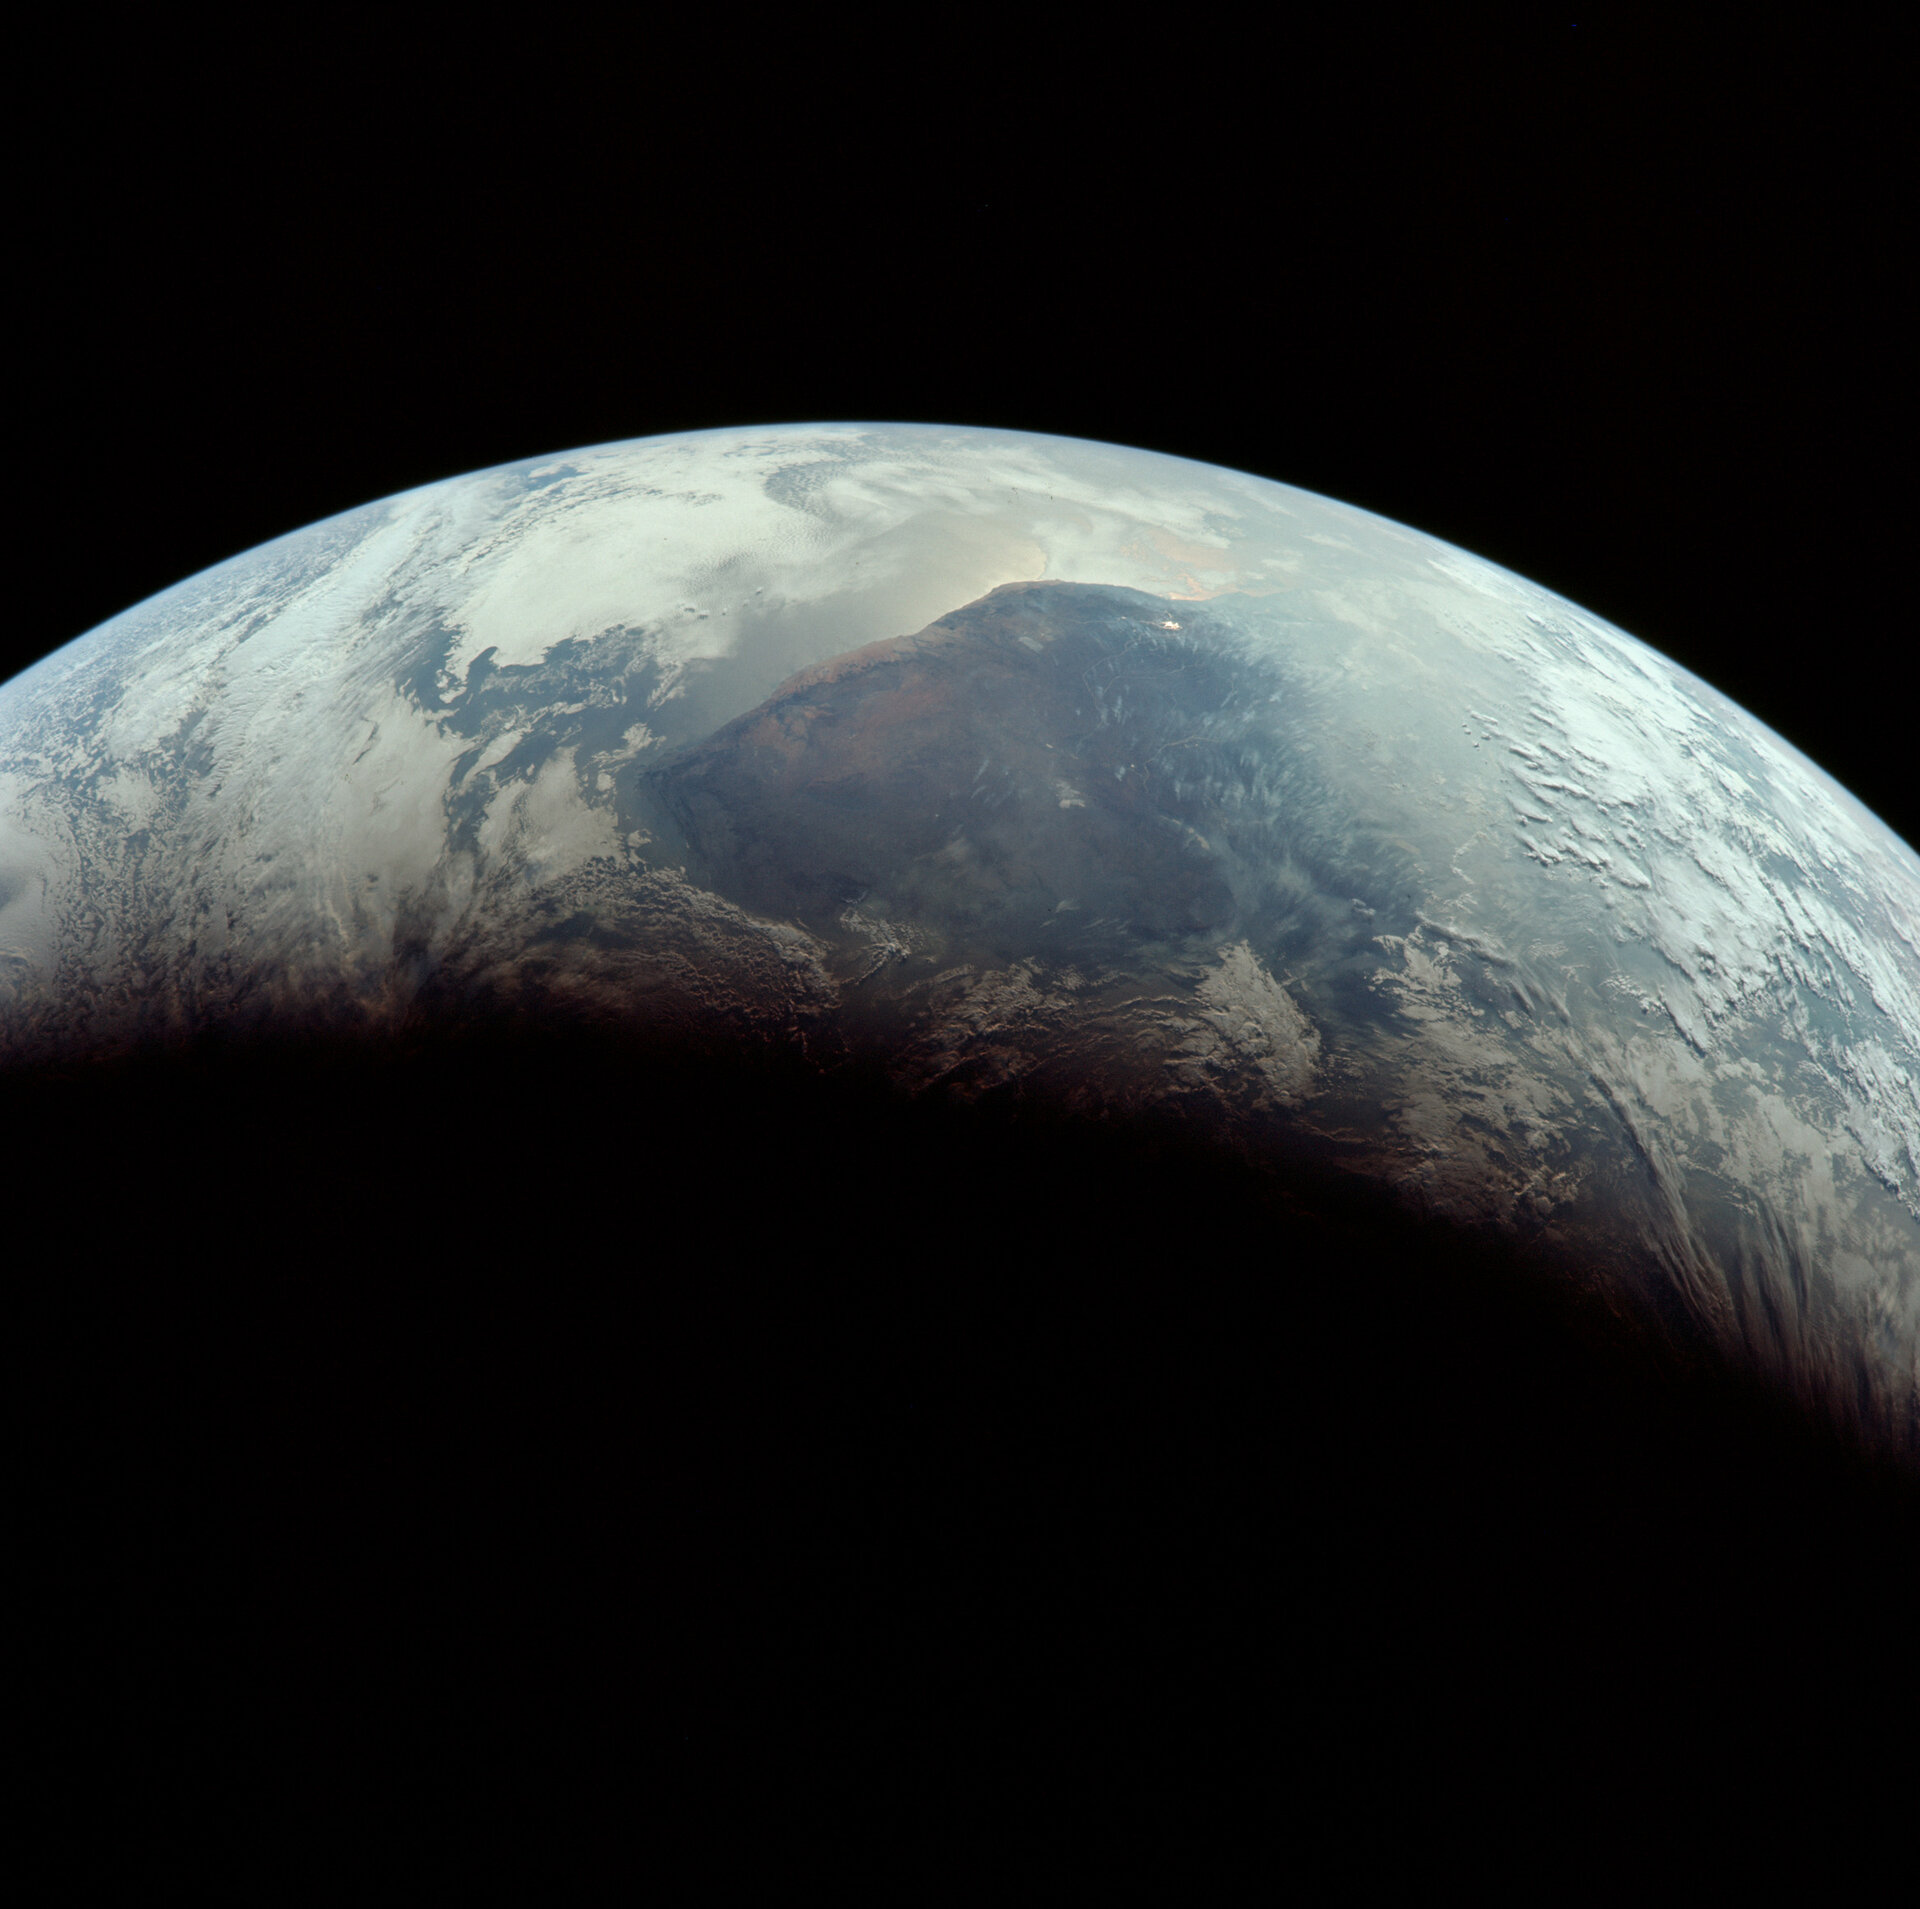 Earth seen by Apollo crew hours before reentry